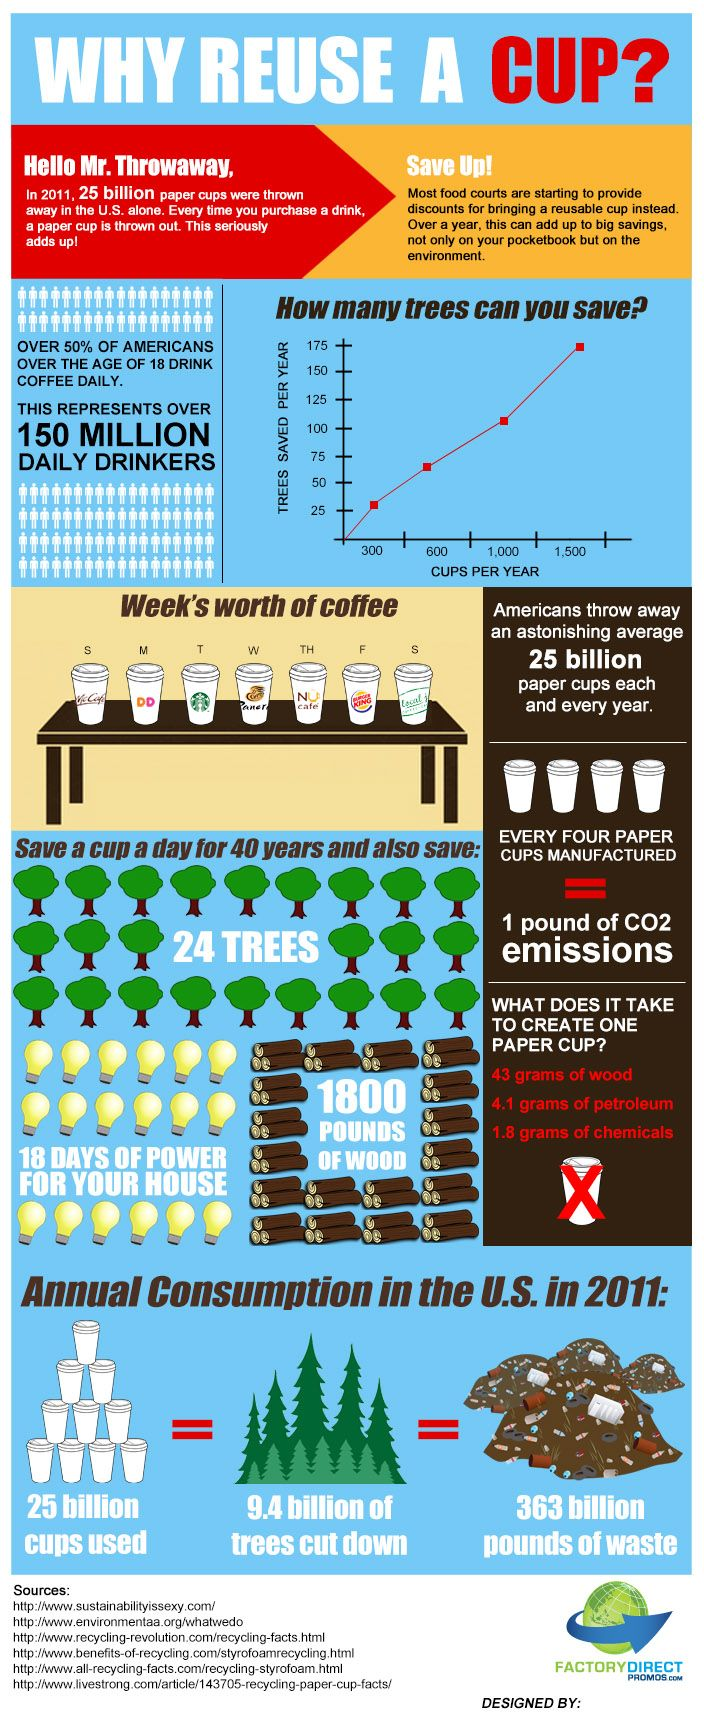 Why we should all be using a reusable mug, cup or bottle! #greenpoppies #reuse